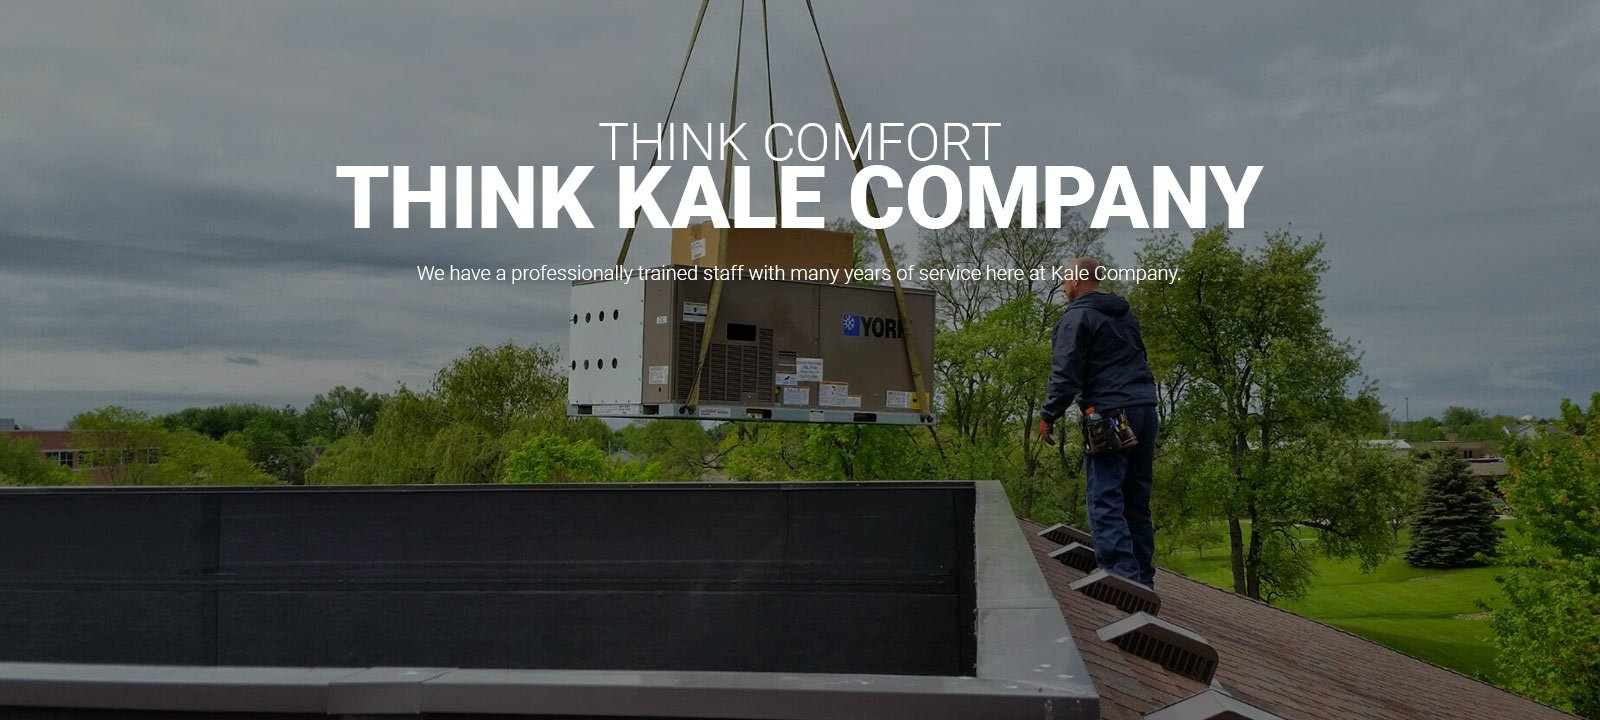 Kale Heating & Air Conditioning